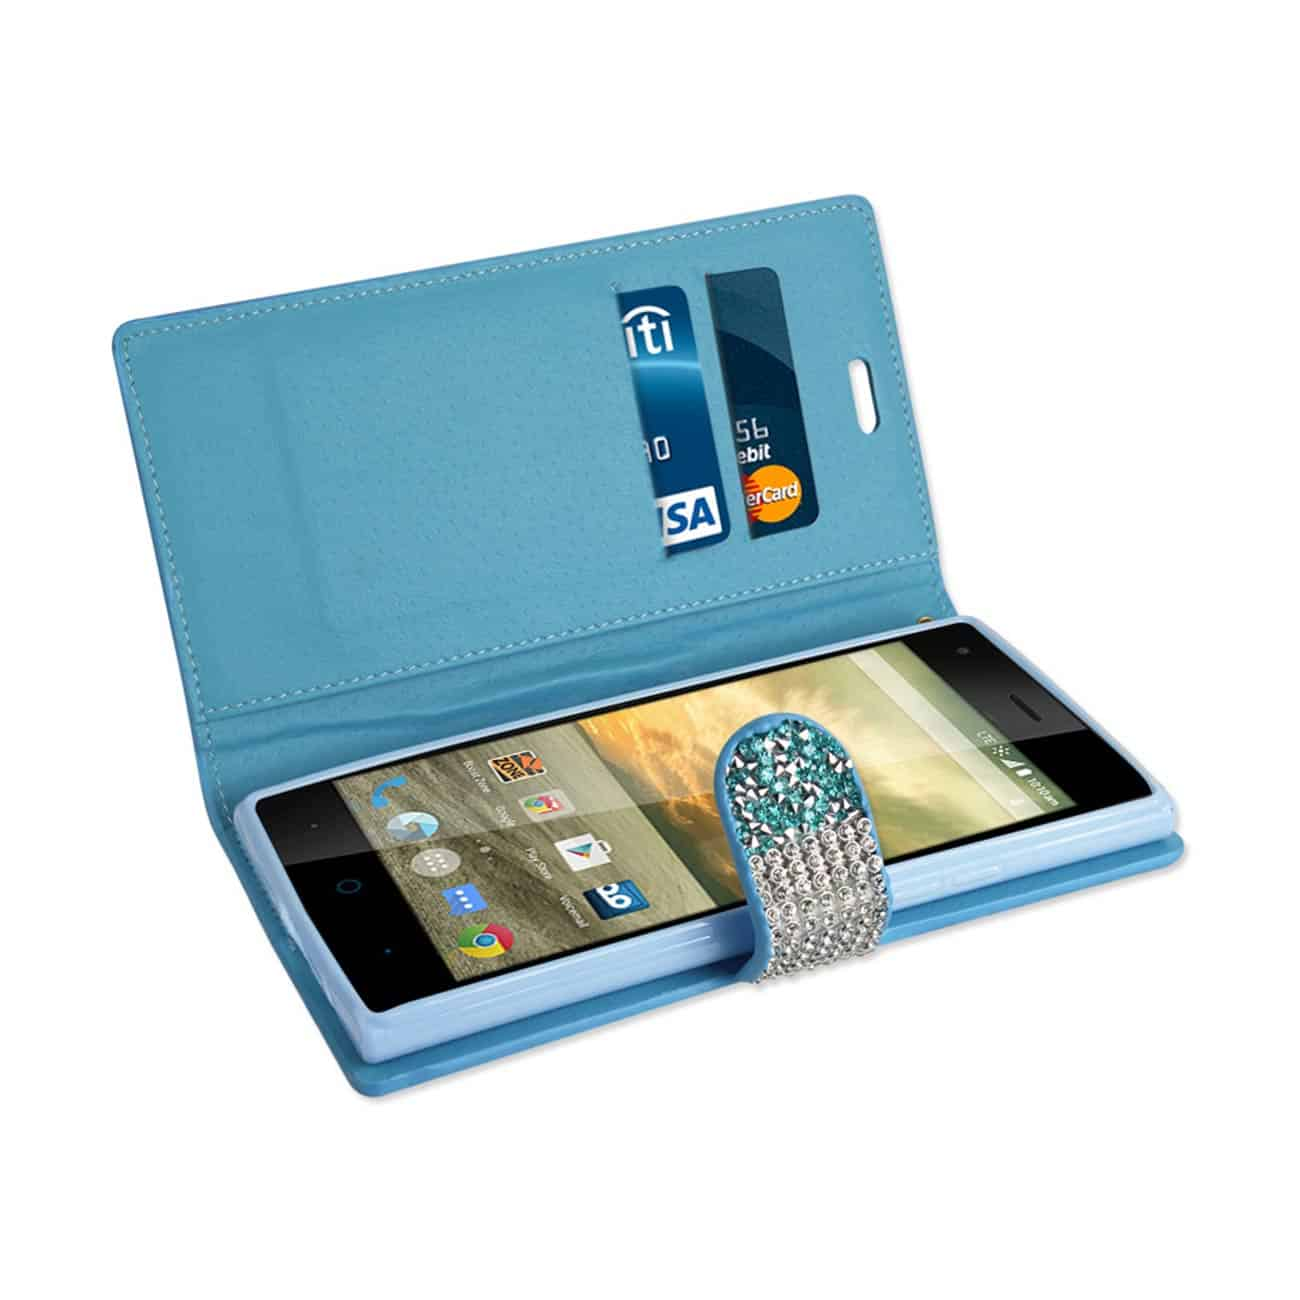 ZTE WARP ELITE JEWELRY RHINESTONE WALLET CASE IN BLUE